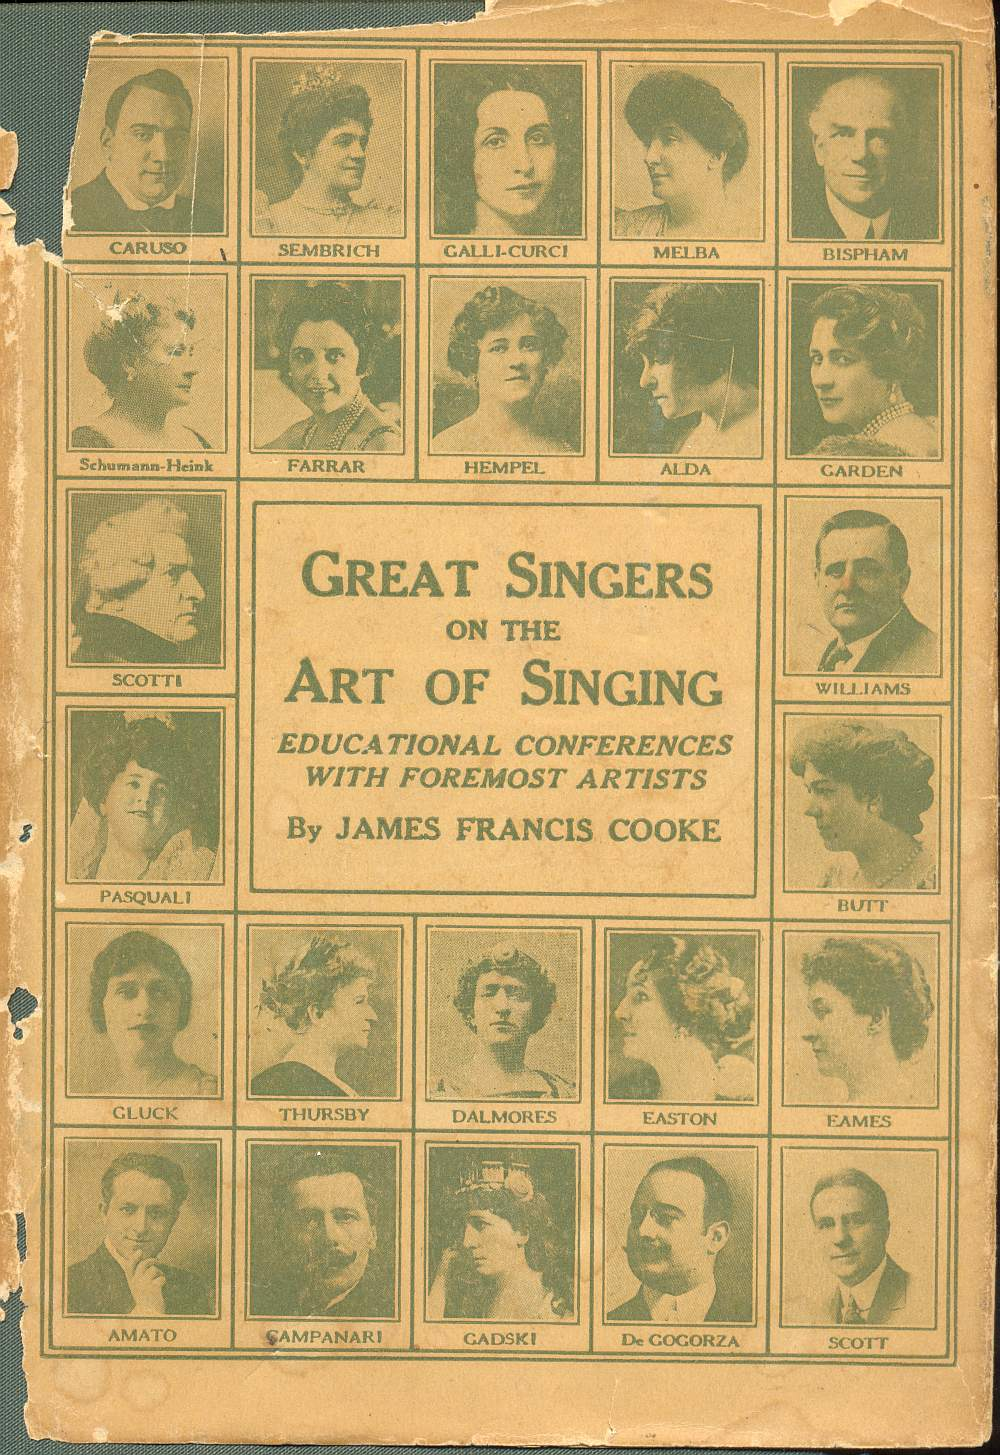 The project gutenberg ebook of great singers on the art of singing art of singing fandeluxe Gallery